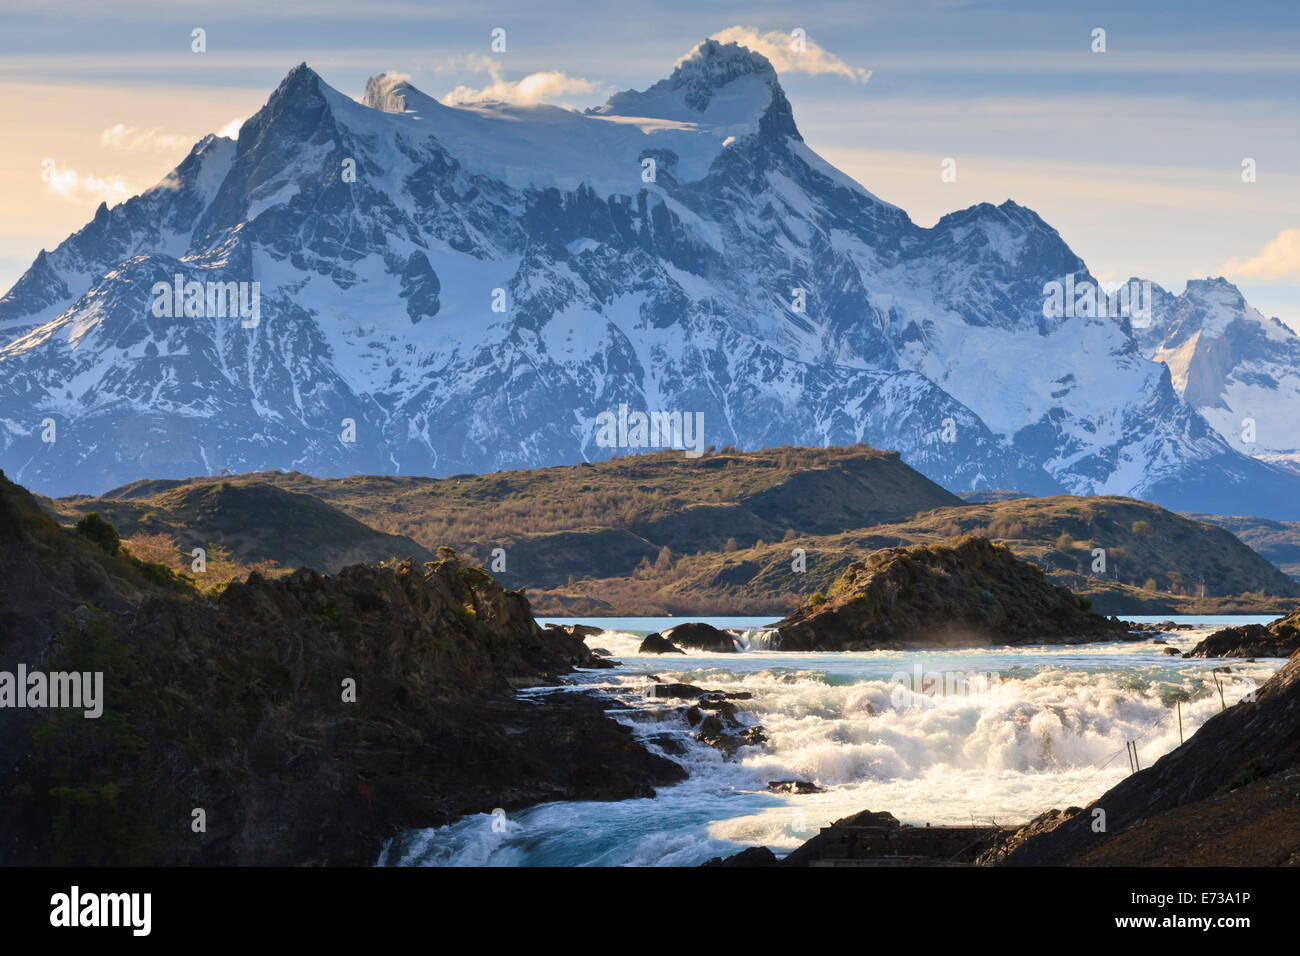 Salto Chico and Cordillera del Paine, Torres del Paine National Park, Patagonia, Chile, South America - Stock Image